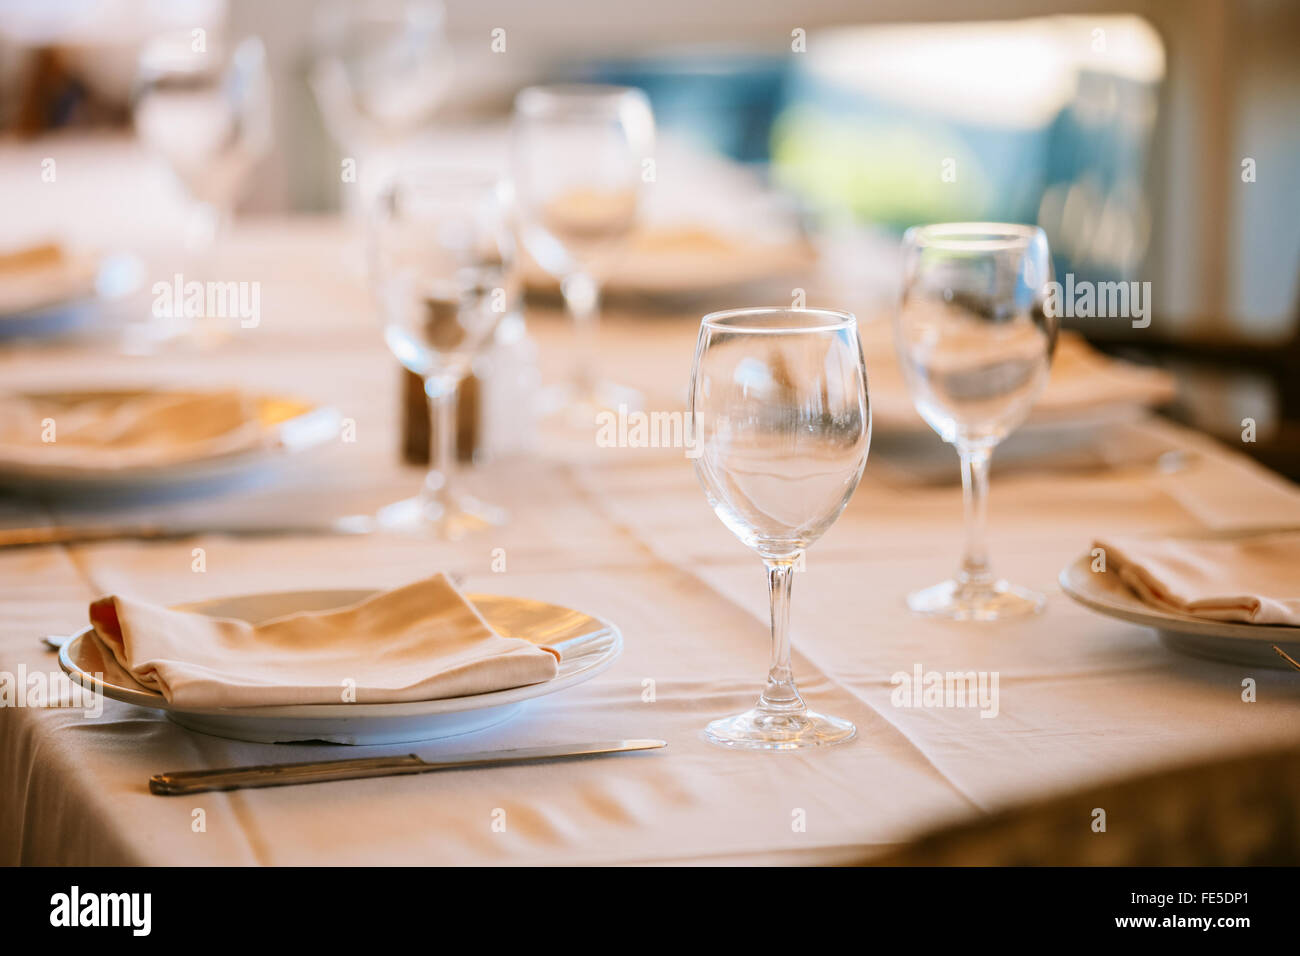 The cozy interior of the summer cafe European city. Tableware, tables covered with tablecloths. Resting-place. Catering. - Stock Image